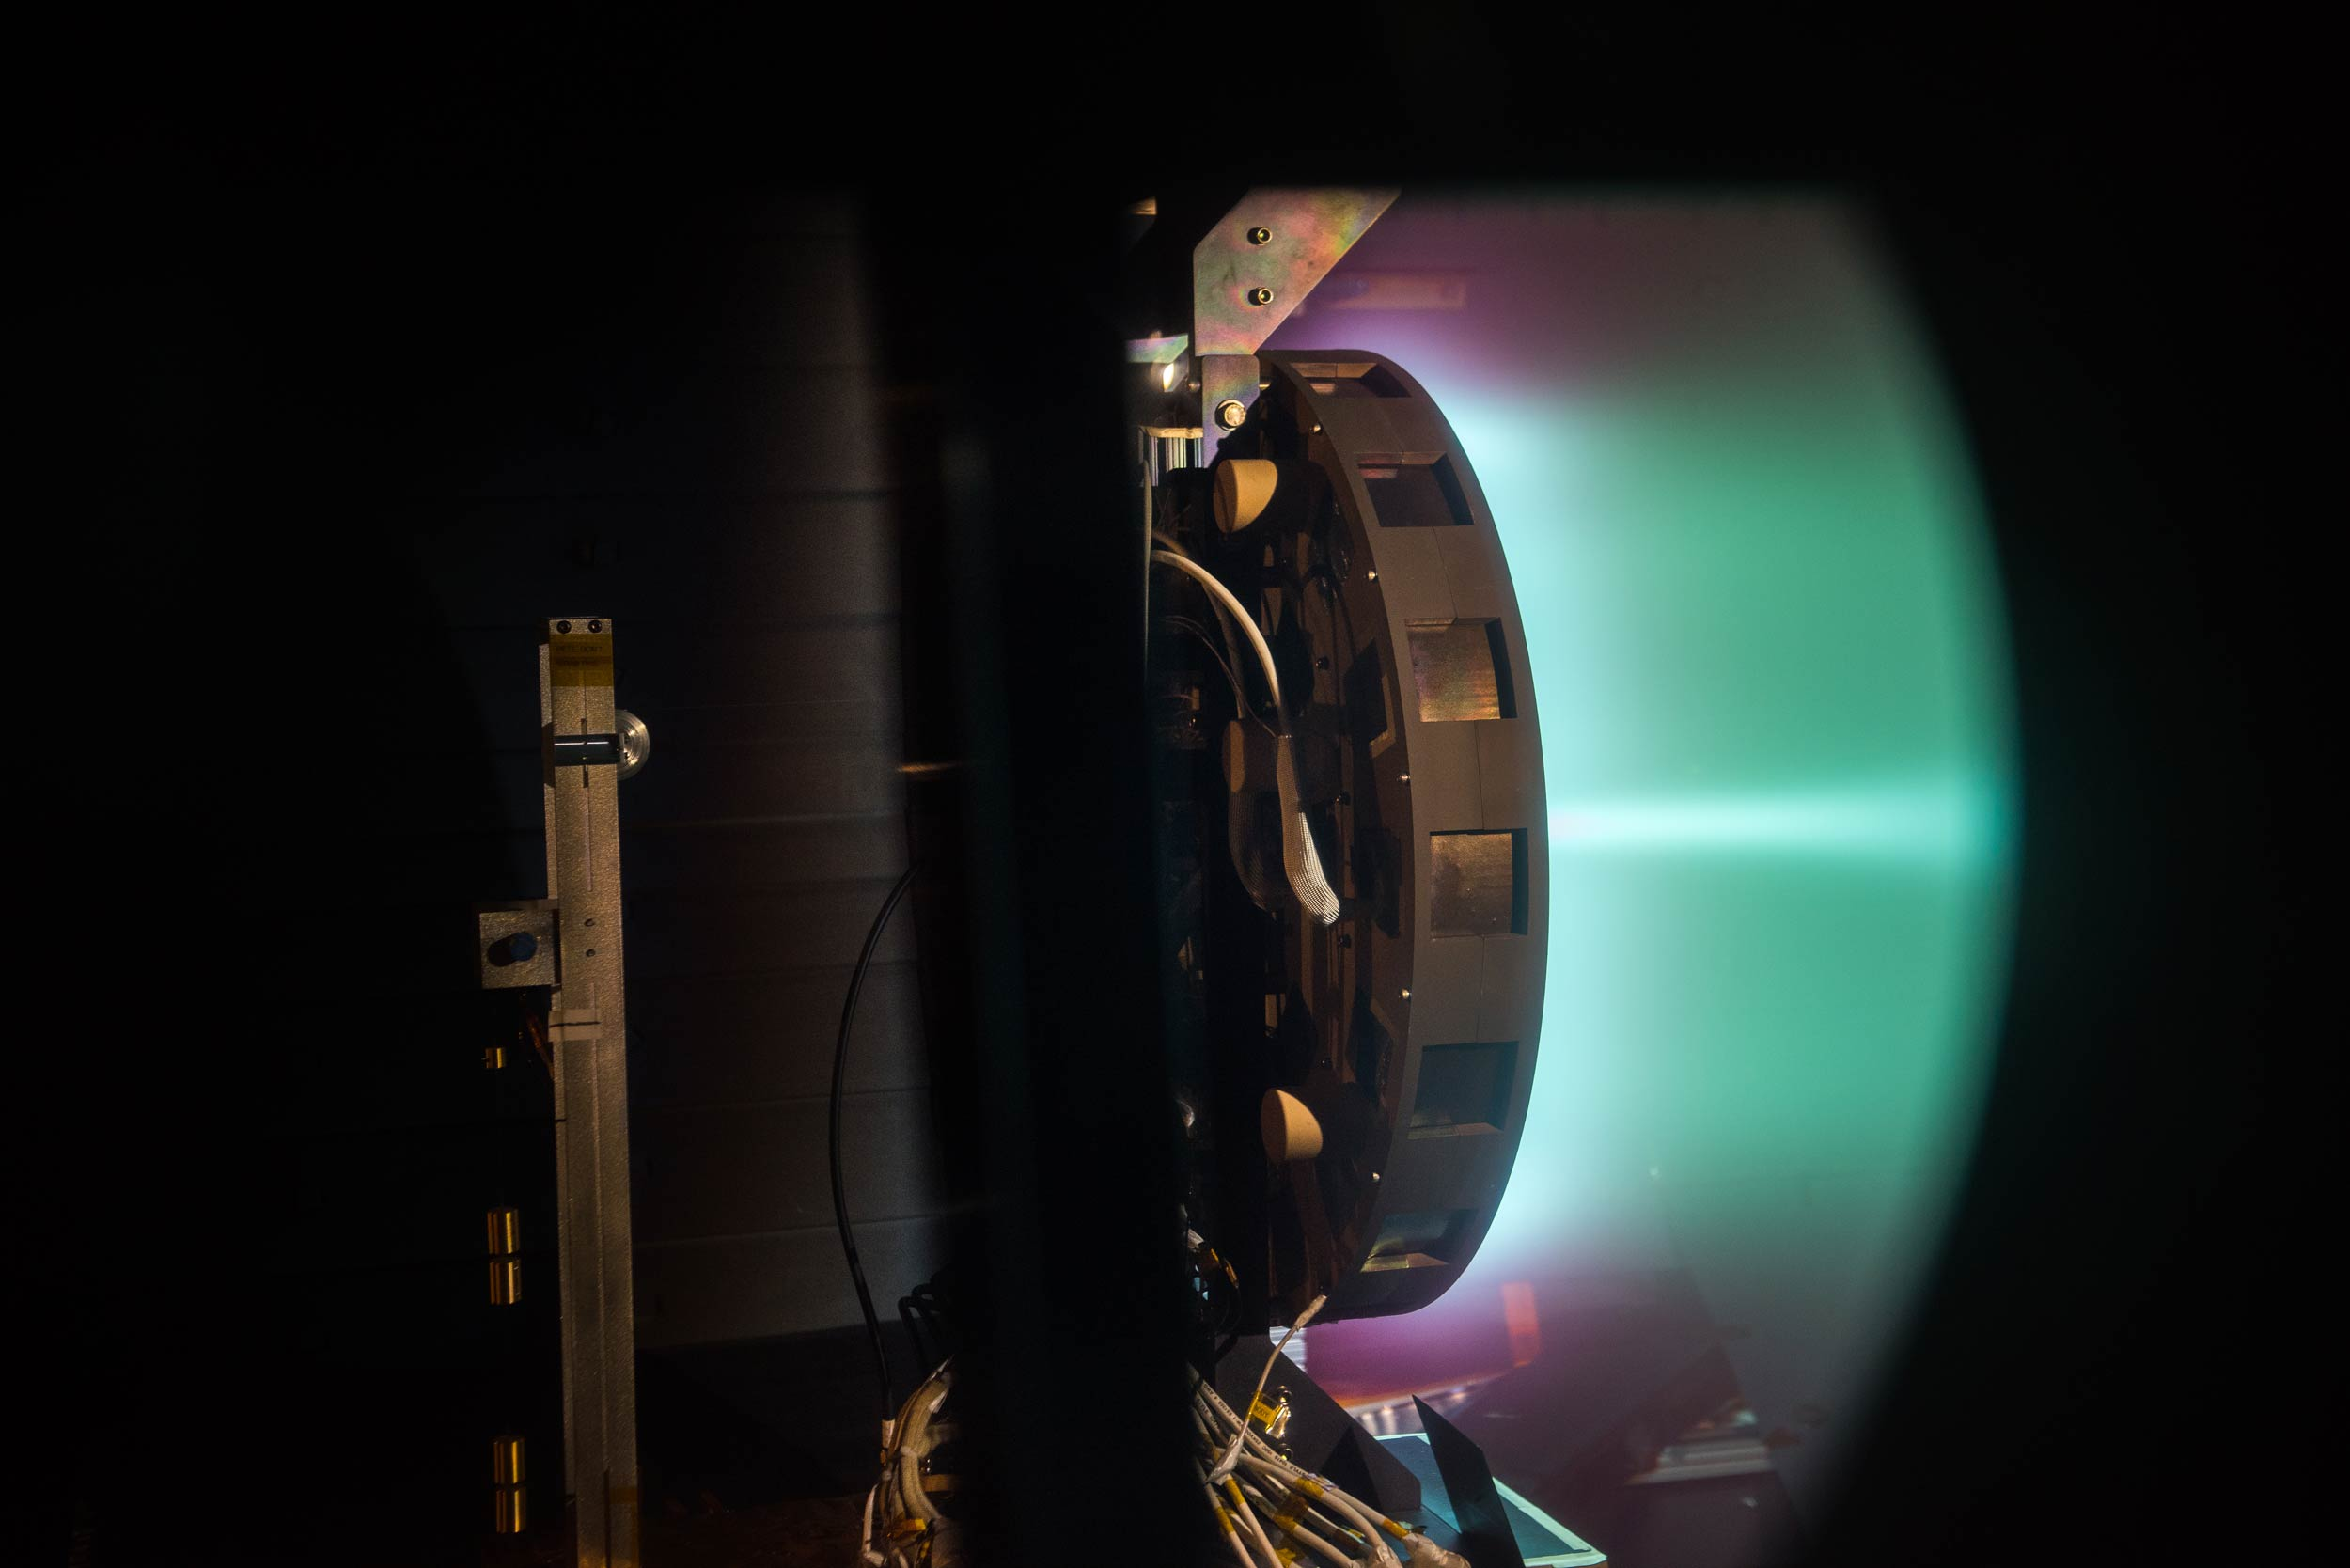 A side shot of the X3 firing at 50 kilowatts. Image credit: NASA